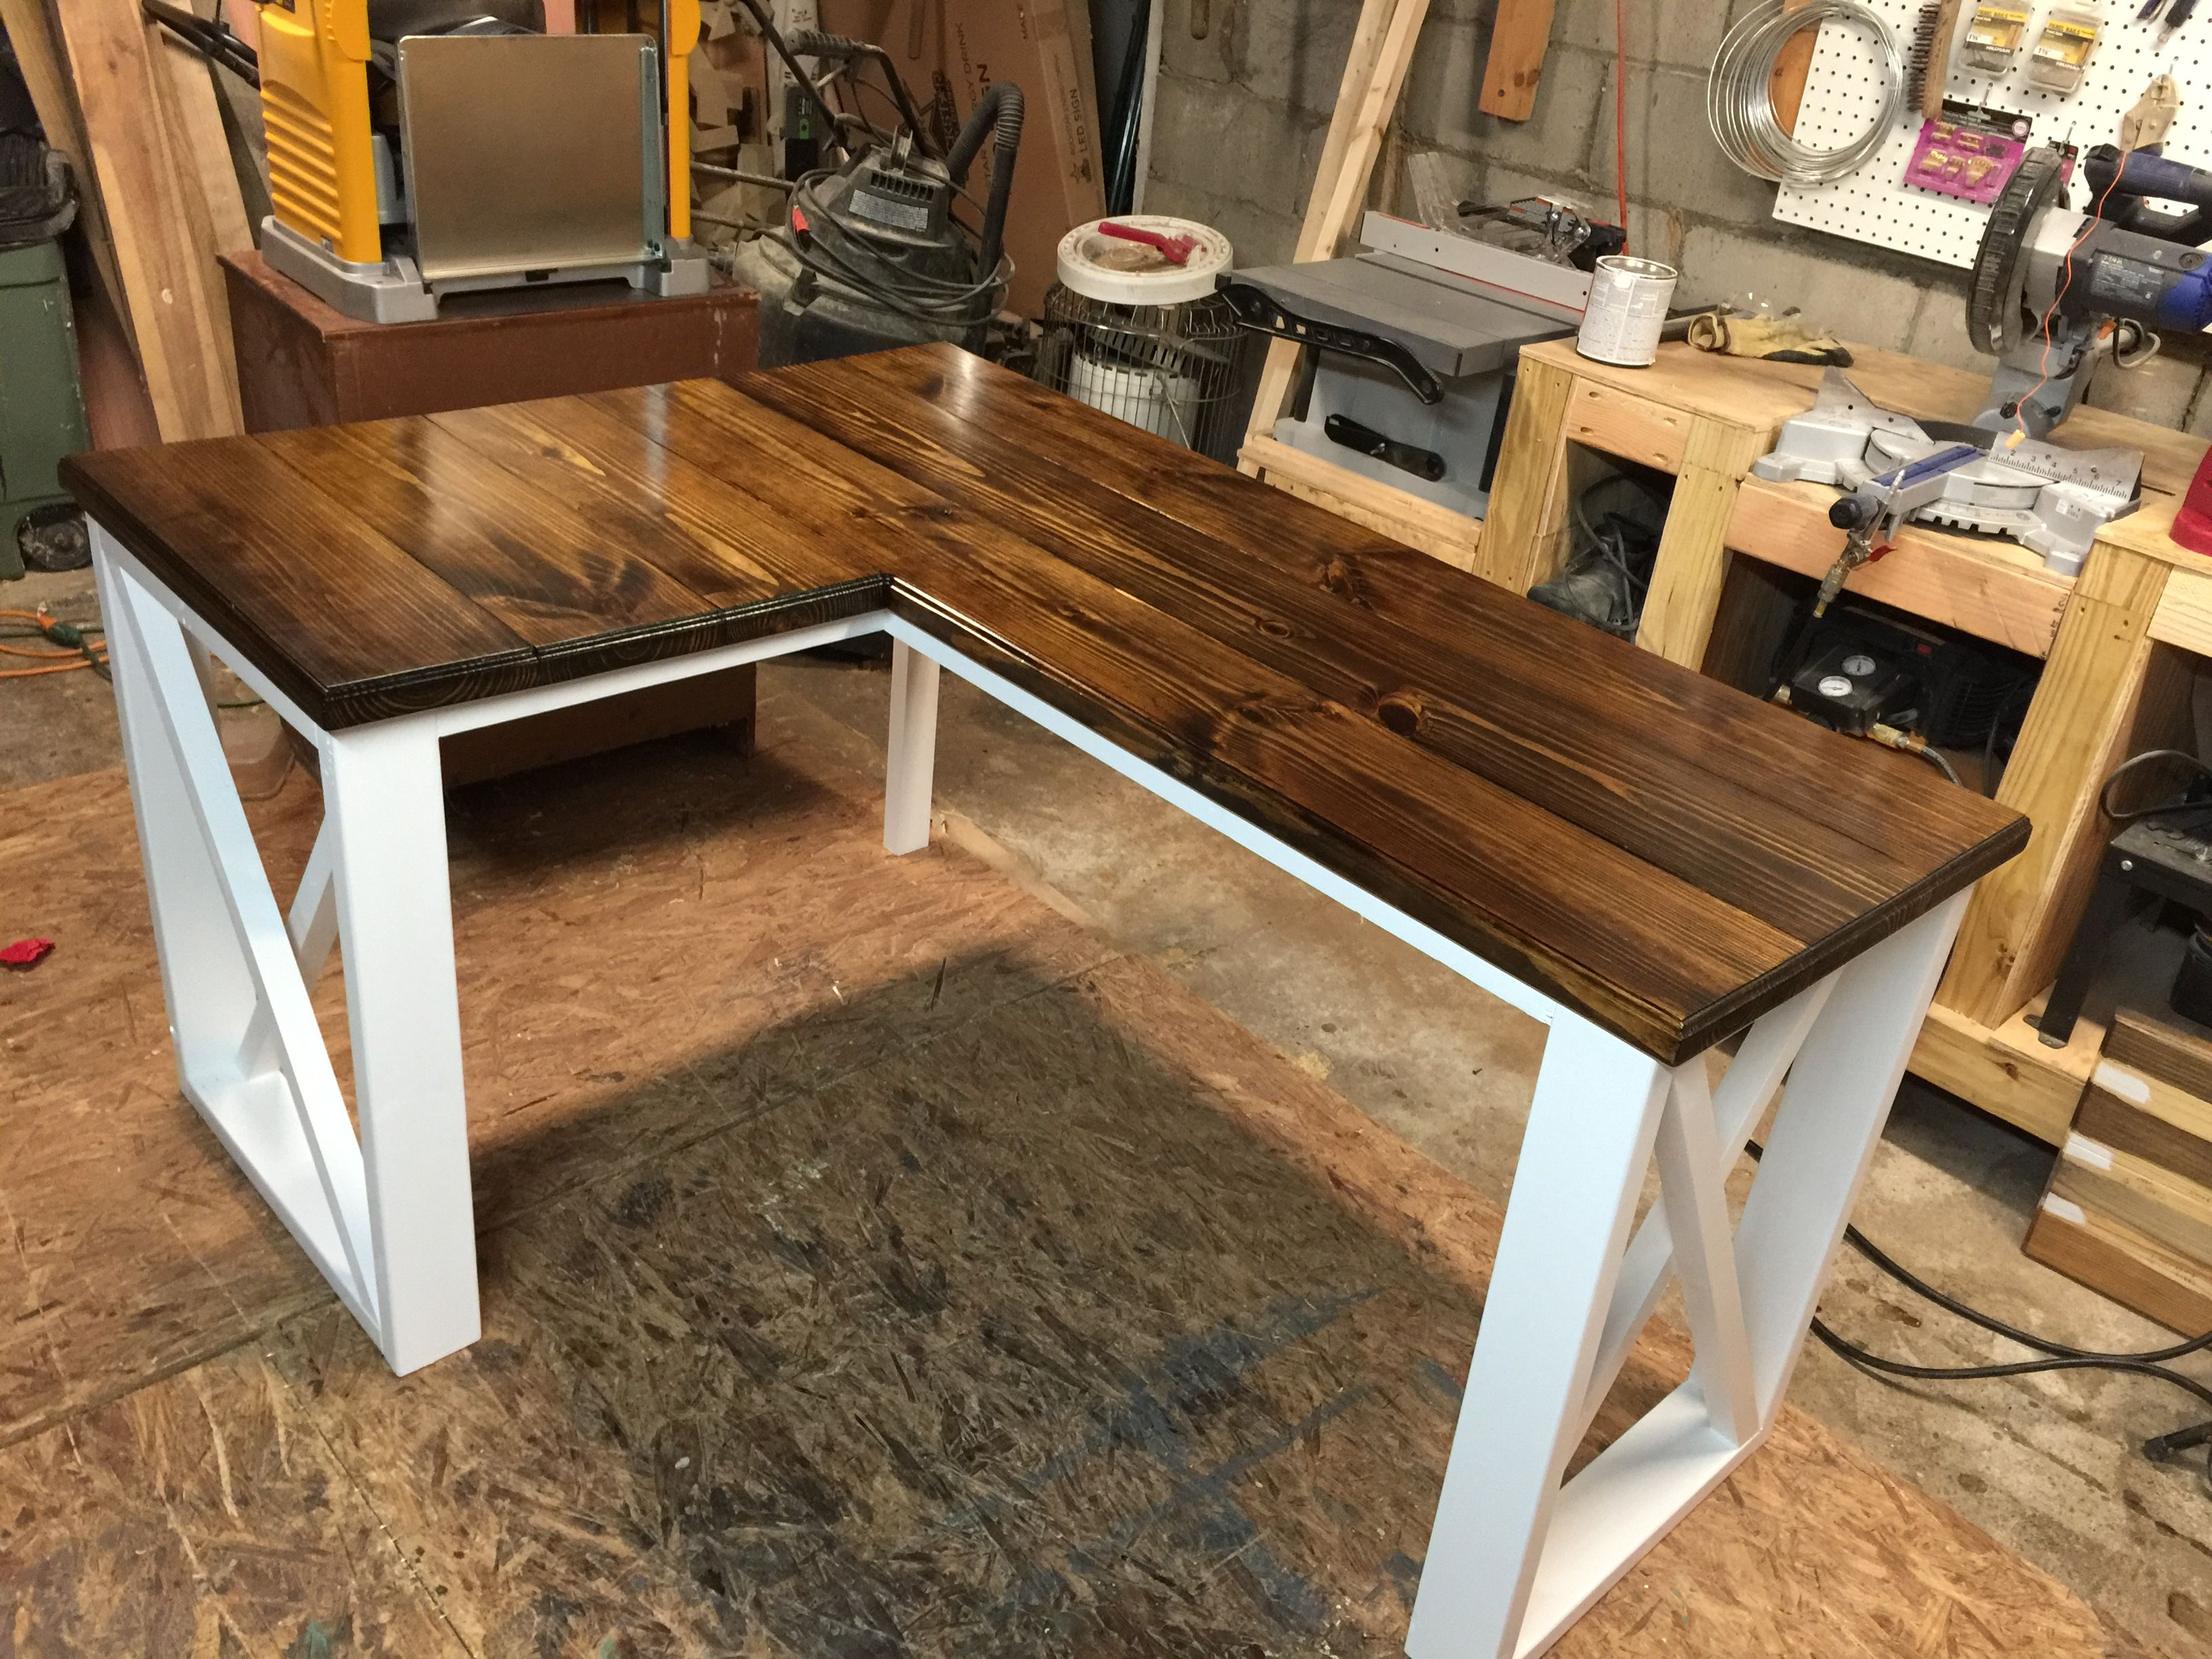 Lshaped desk made using 2x4s and 2x8's (With images